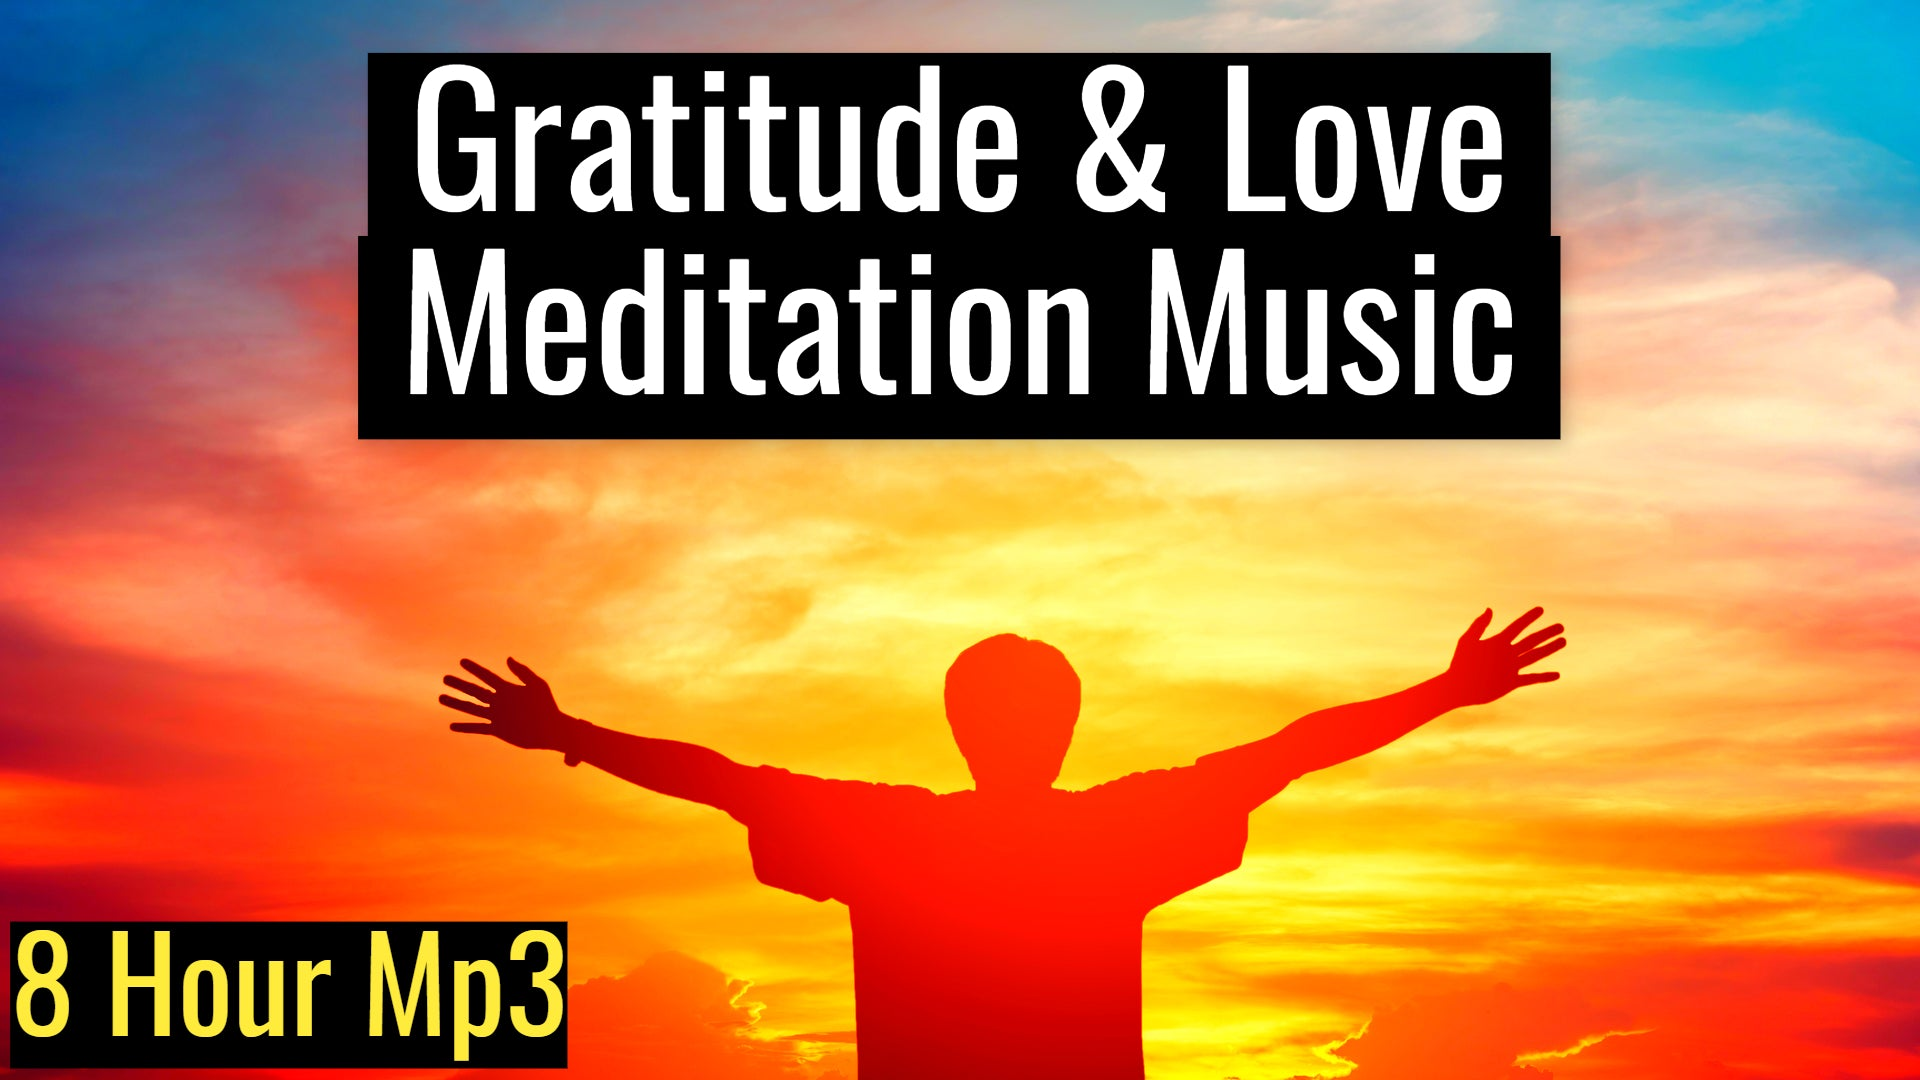 Gratitude & Love Meditation Music | Manifest Abundance, Love and Harmony (8 Hour Track)